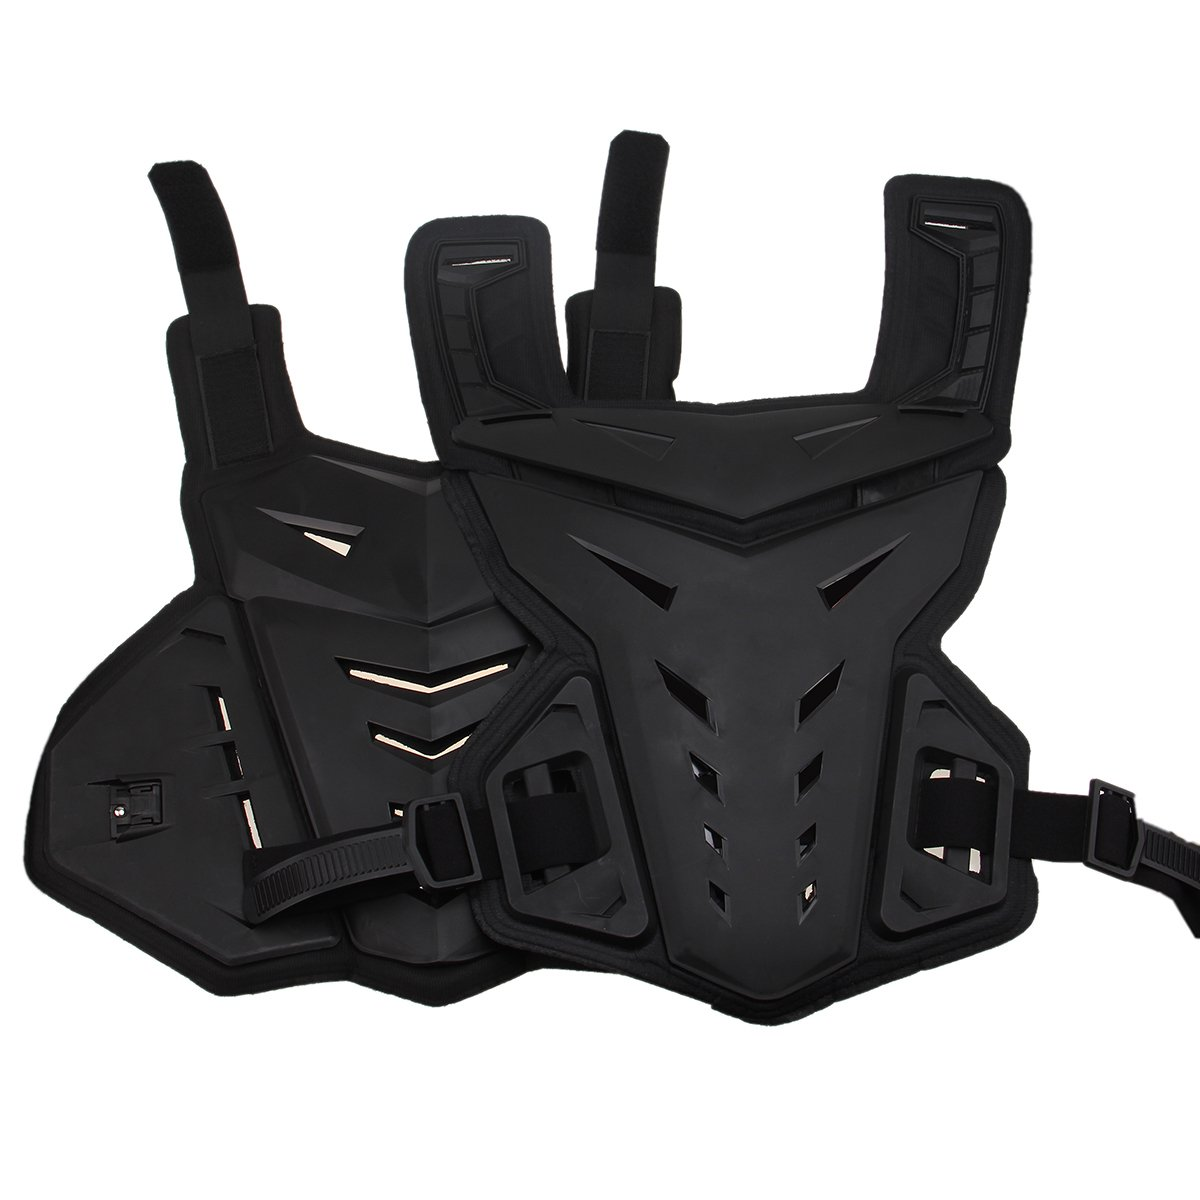 Chest Back Vest Armor Protector for Motocross Riding Skating Skiing Scooter by Possbay (Image #4)